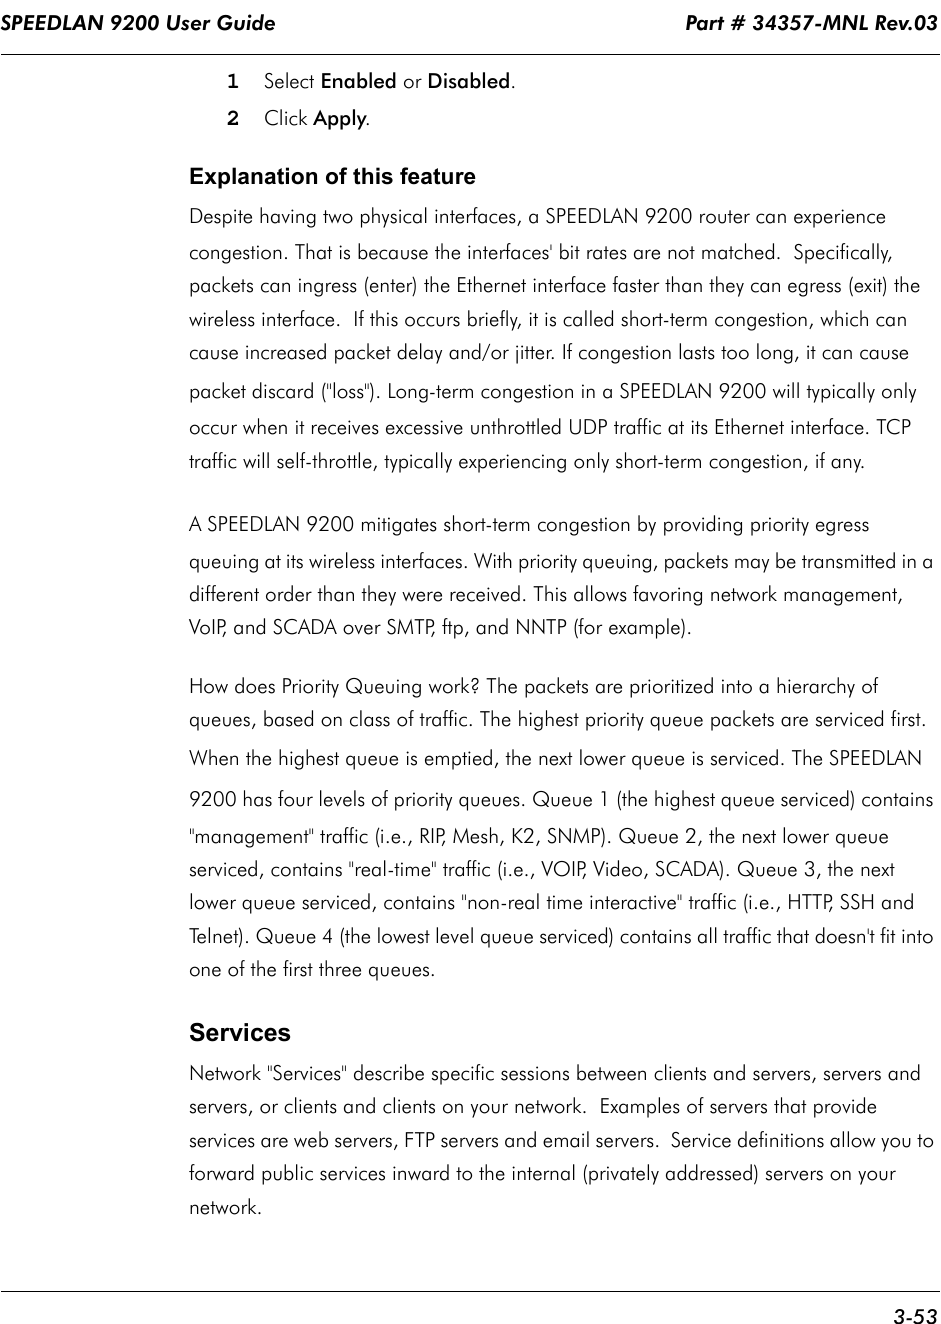 """SPEEDLAN 9200 User Guide                                                                    Part # 34357-MNL Rev.03      3-53                                                                                                                                                              1Select Enabled or Disabled.2Click Apply.Explanation of this featureDespite having two physical interfaces, a SPEEDLAN 9200 router can experience congestion. That is because the interfaces' bit rates are not matched.  Specifically, packets can ingress (enter) the Ethernet interface faster than they can egress (exit) the wireless interface.  If this occurs briefly, it is called short-term congestion, which can cause increased packet delay and/or jitter. If congestion lasts too long, it can cause packet discard (""""loss""""). Long-term congestion in a SPEEDLAN 9200 will typically only occur when it receives excessive unthrottled UDP traffic at its Ethernet interface. TCP traffic will self-throttle, typically experiencing only short-term congestion, if any.A SPEEDLAN 9200 mitigates short-term congestion by providing priority egress queuing at its wireless interfaces. With priority queuing, packets may be transmitted in a different order than they were received. This allows favoring network management, VoIP, and SCADA over SMTP, ftp, and NNTP (for example). How does Priority Queuing work? The packets are prioritized into a hierarchy of queues, based on class of traffic. The highest priority queue packets are serviced first. When the highest queue is emptied, the next lower queue is serviced. The SPEEDLAN 9200 has four levels of priority queues. Queue 1 (the highest queue serviced) contains """"management"""" traffic (i.e., RIP, Mesh, K2, SNMP). Queue 2, the next lower queue serviced, contains """"real-time"""" traffic (i.e., VOIP, Video, SCADA). Queue 3, the next lower queue serviced, contains """"non-real time interactive"""" traffic (i.e., HTTP, SSH and Telnet). Queue 4 (the lowest level queue serviced) contains """